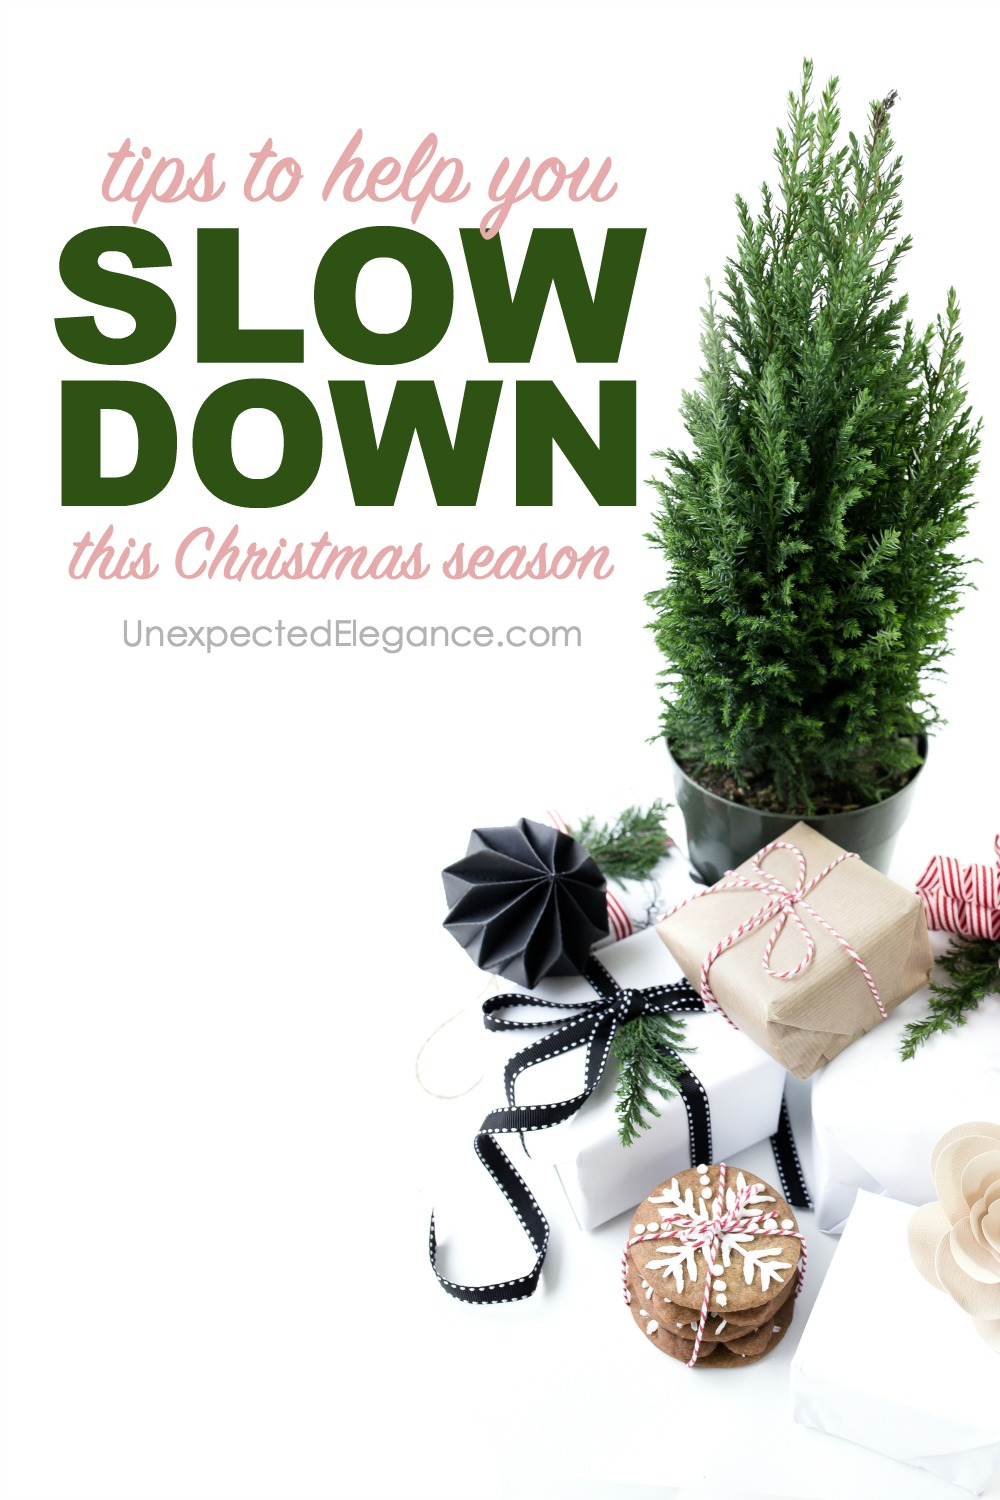 tips-to-help-you-slow-down-this-christmas-season